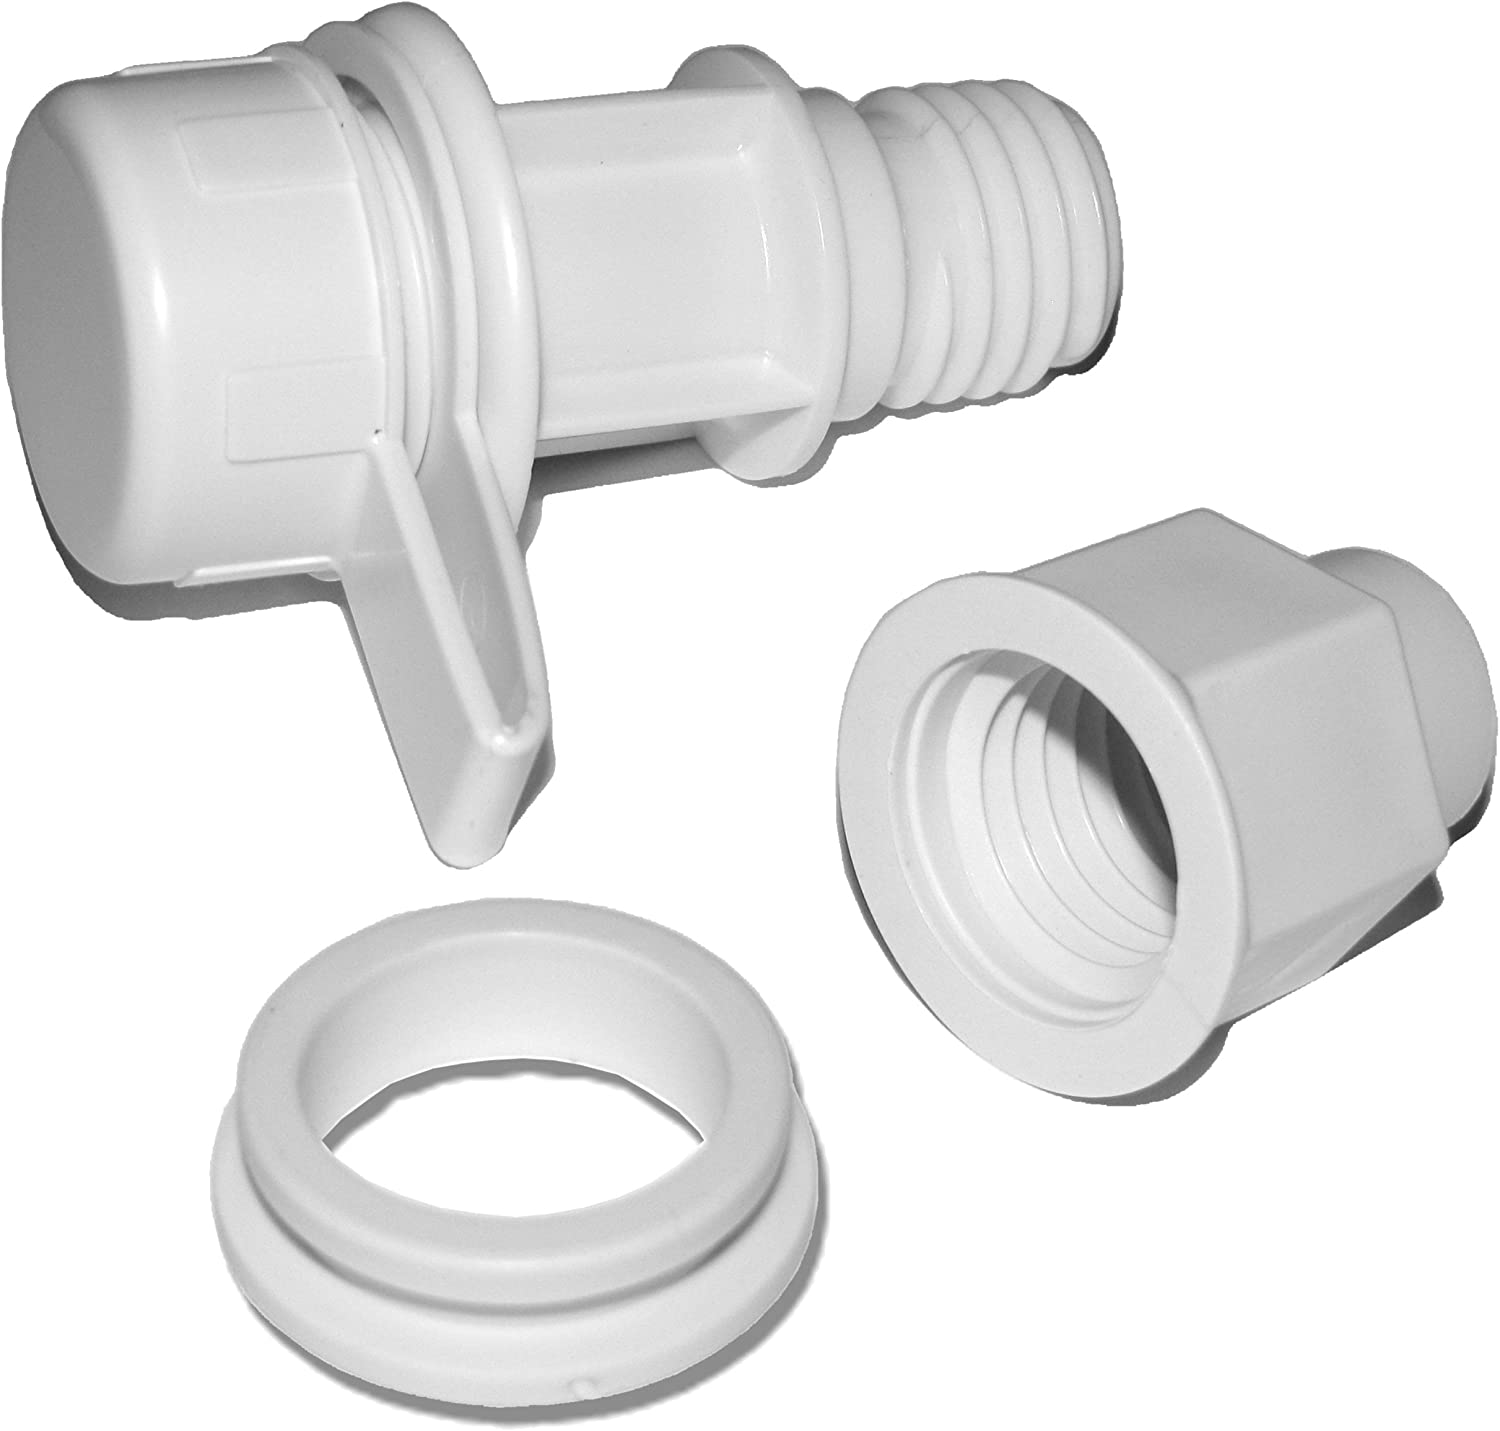 "Coleman Cooler Drain Plug Assembly for Xtreme Coolers 1.5/"" Shaft Length"